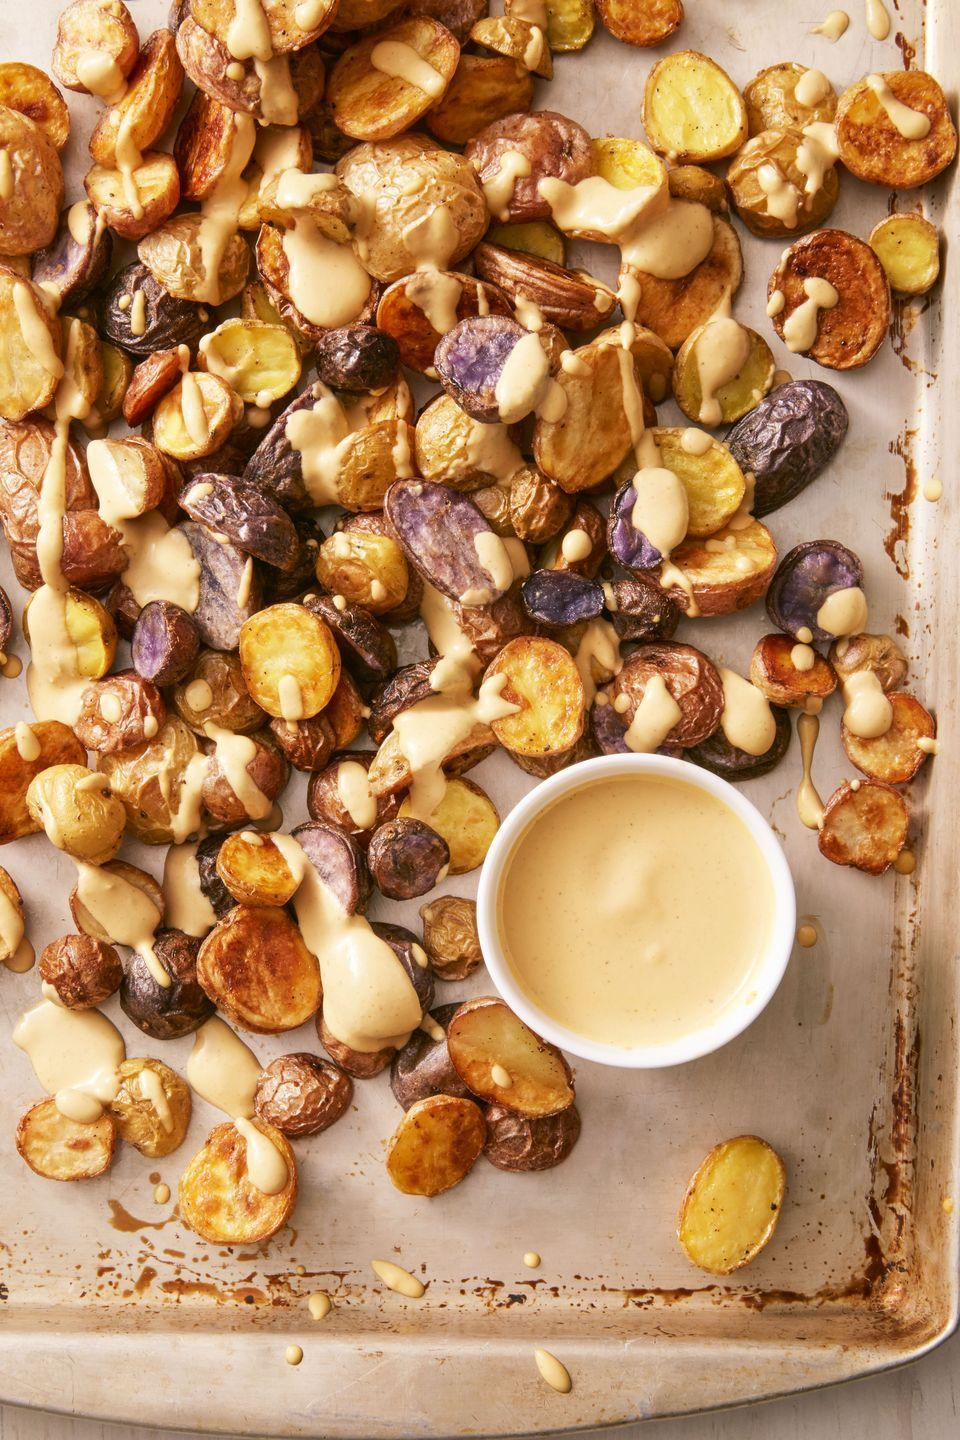 """<p>You'll never guess this nacho sauce is vegan, and you'll definitely want to slather it on potatoes, veggies or whatever you can get your hands on.</p><p><span class=""""redactor-invisible-space""""><span class=""""redactor-invisible-space""""><span class=""""redactor-invisible-space""""><span class=""""redactor-invisible-space""""><span class=""""redactor-invisible-space""""><em><a href=""""https://www.goodhousekeeping.com/food-recipes/easy/a36256/crispy-potatoes-with-vegan-nacho-sauce/"""" rel=""""nofollow noopener"""" target=""""_blank"""" data-ylk=""""slk:Get the recipe for Crispy Potatoes with Vegan Nacho Sauce »"""" class=""""link rapid-noclick-resp"""">Get the recipe for Crispy Potatoes with Vegan Nacho Sauce » </a></em></span></span></span></span></span><span class=""""redactor-invisible-space""""><span class=""""redactor-invisible-space""""><span class=""""redactor-invisible-space""""><span class=""""redactor-invisible-space""""><span class=""""redactor-invisible-space""""><br></span></span></span></span></span></p>"""